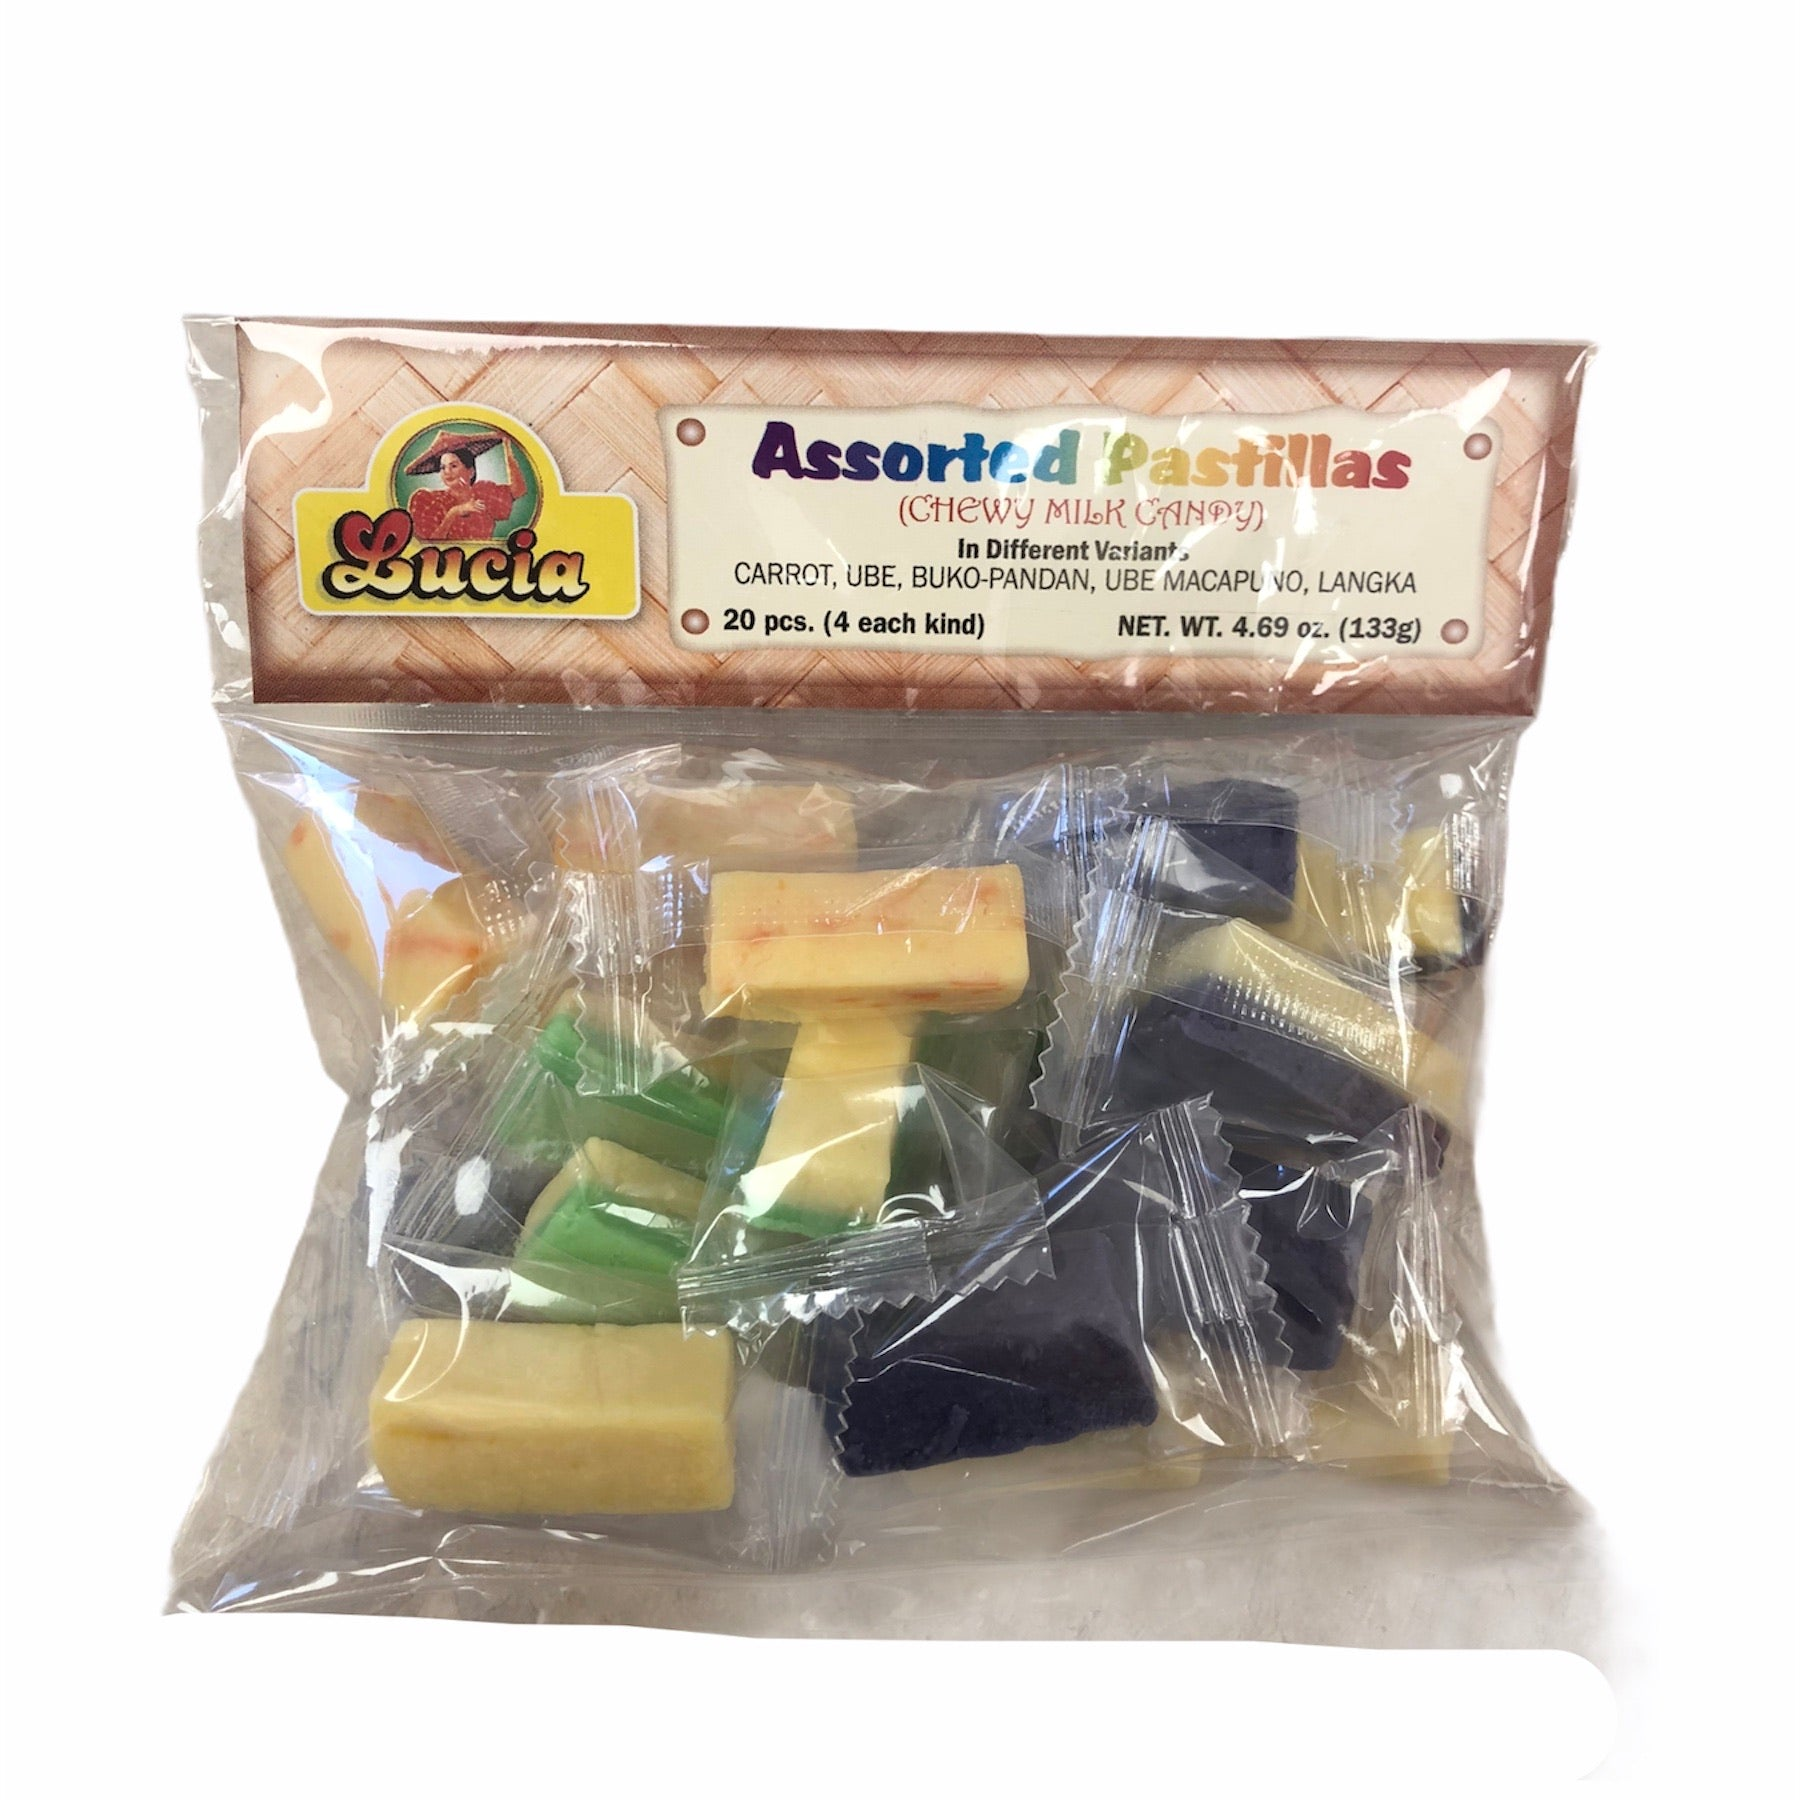 Lucia - Assorted Pastillas - Chewy Milk Candy 4.69 OZ